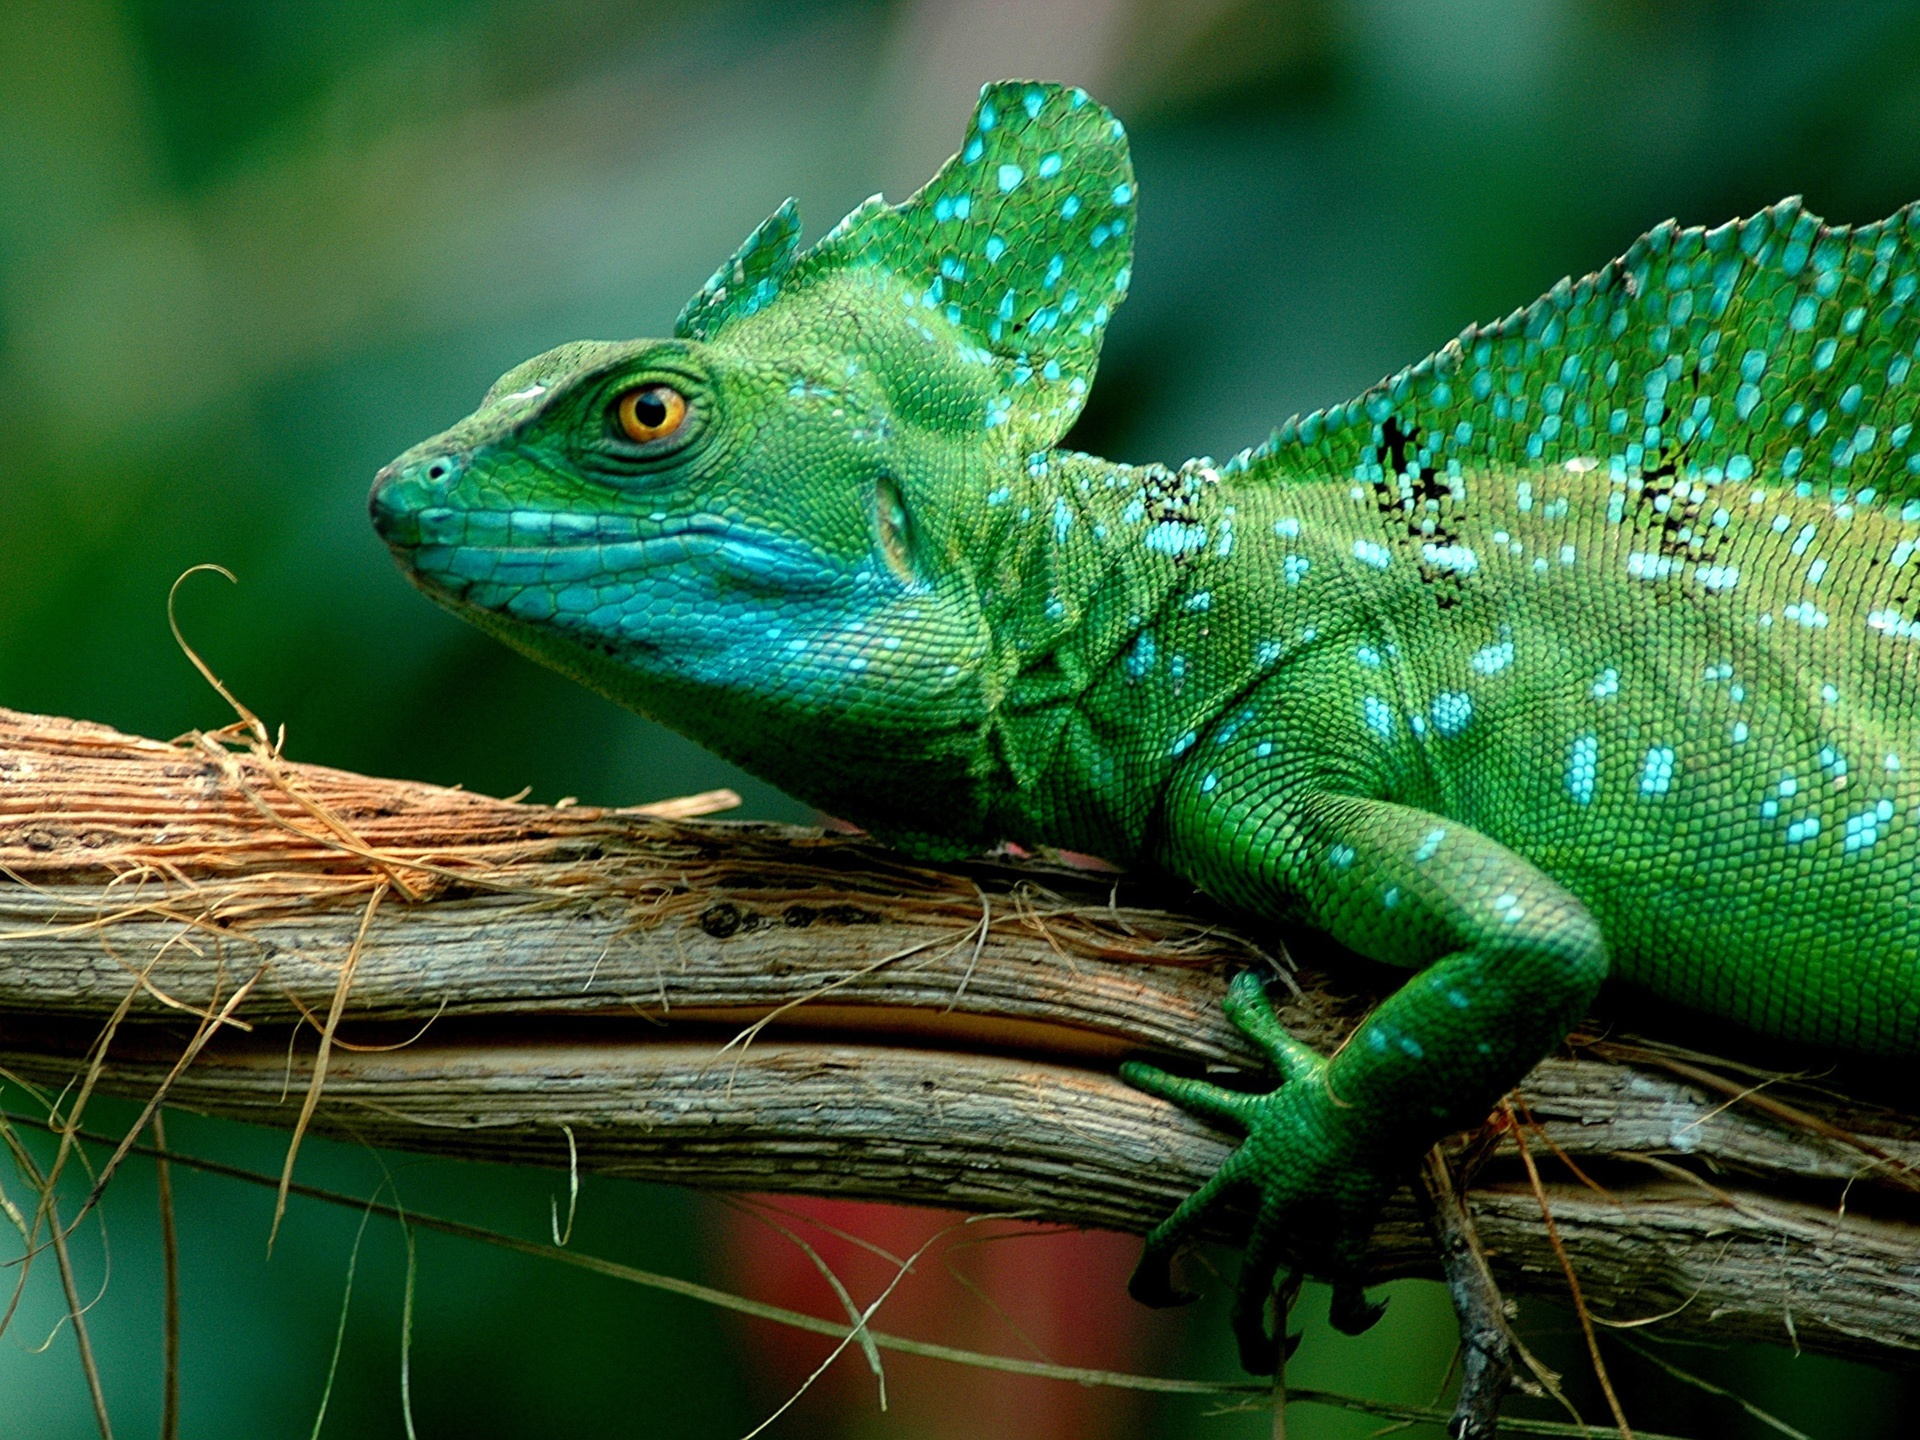 Chameleon Green Lizard